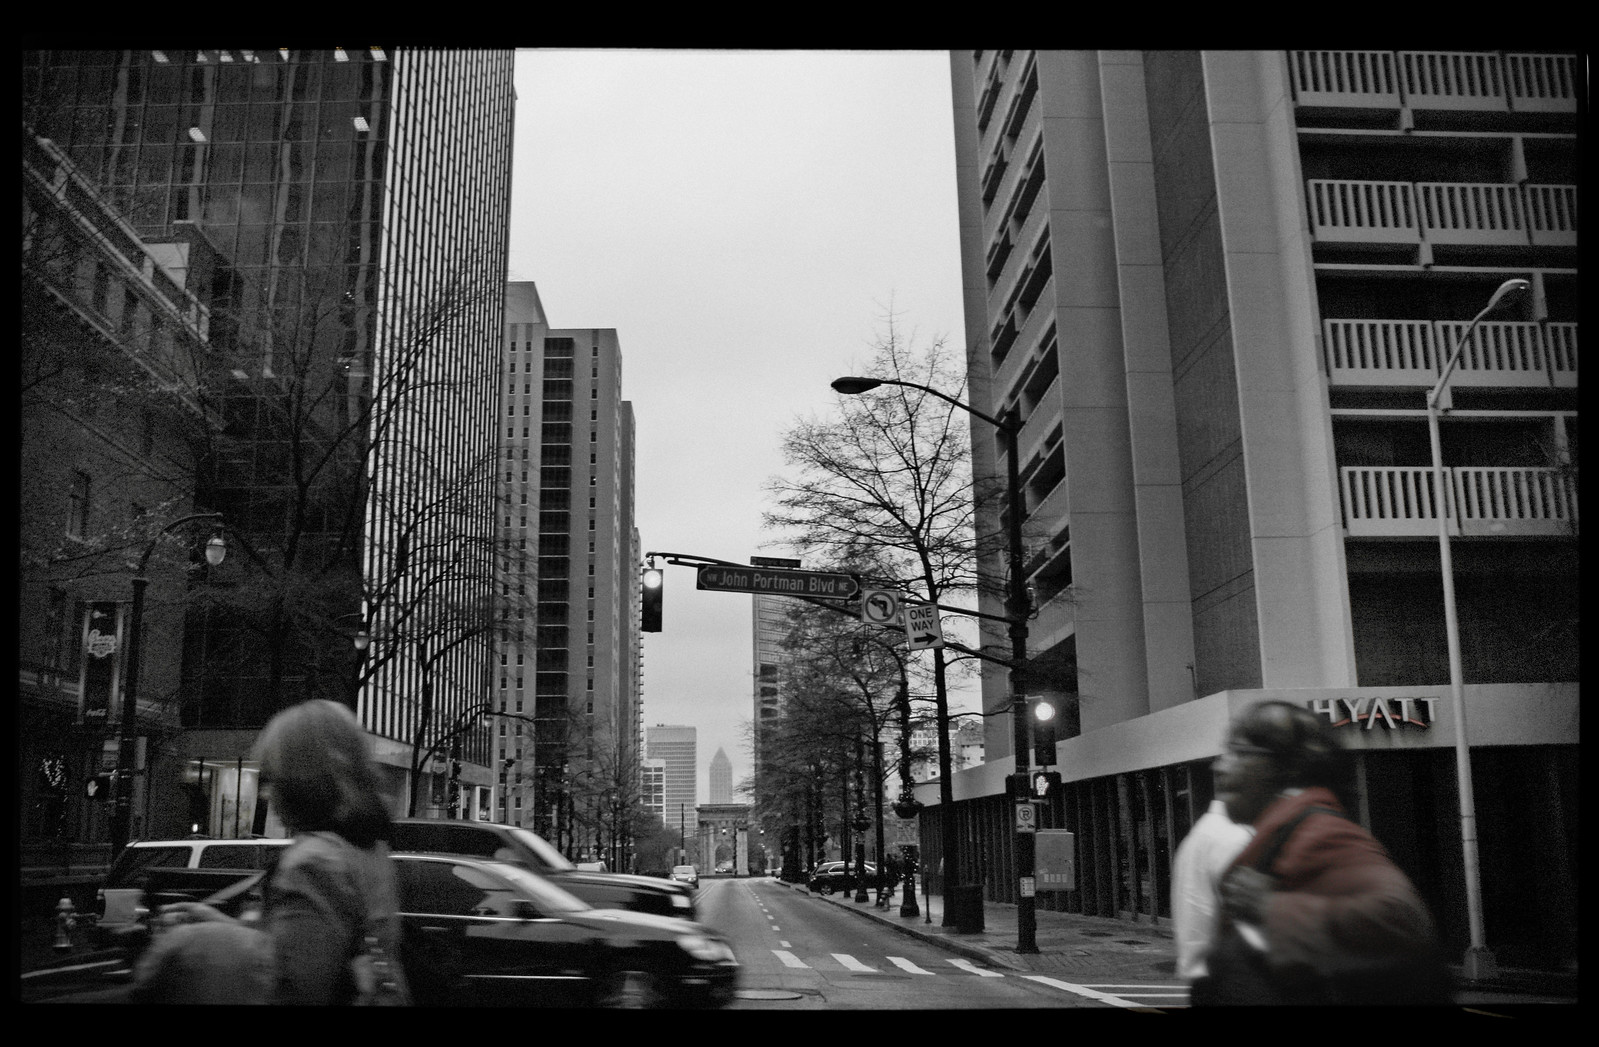 John Portman Blvd, Downtown Atlanta, Dec 2012